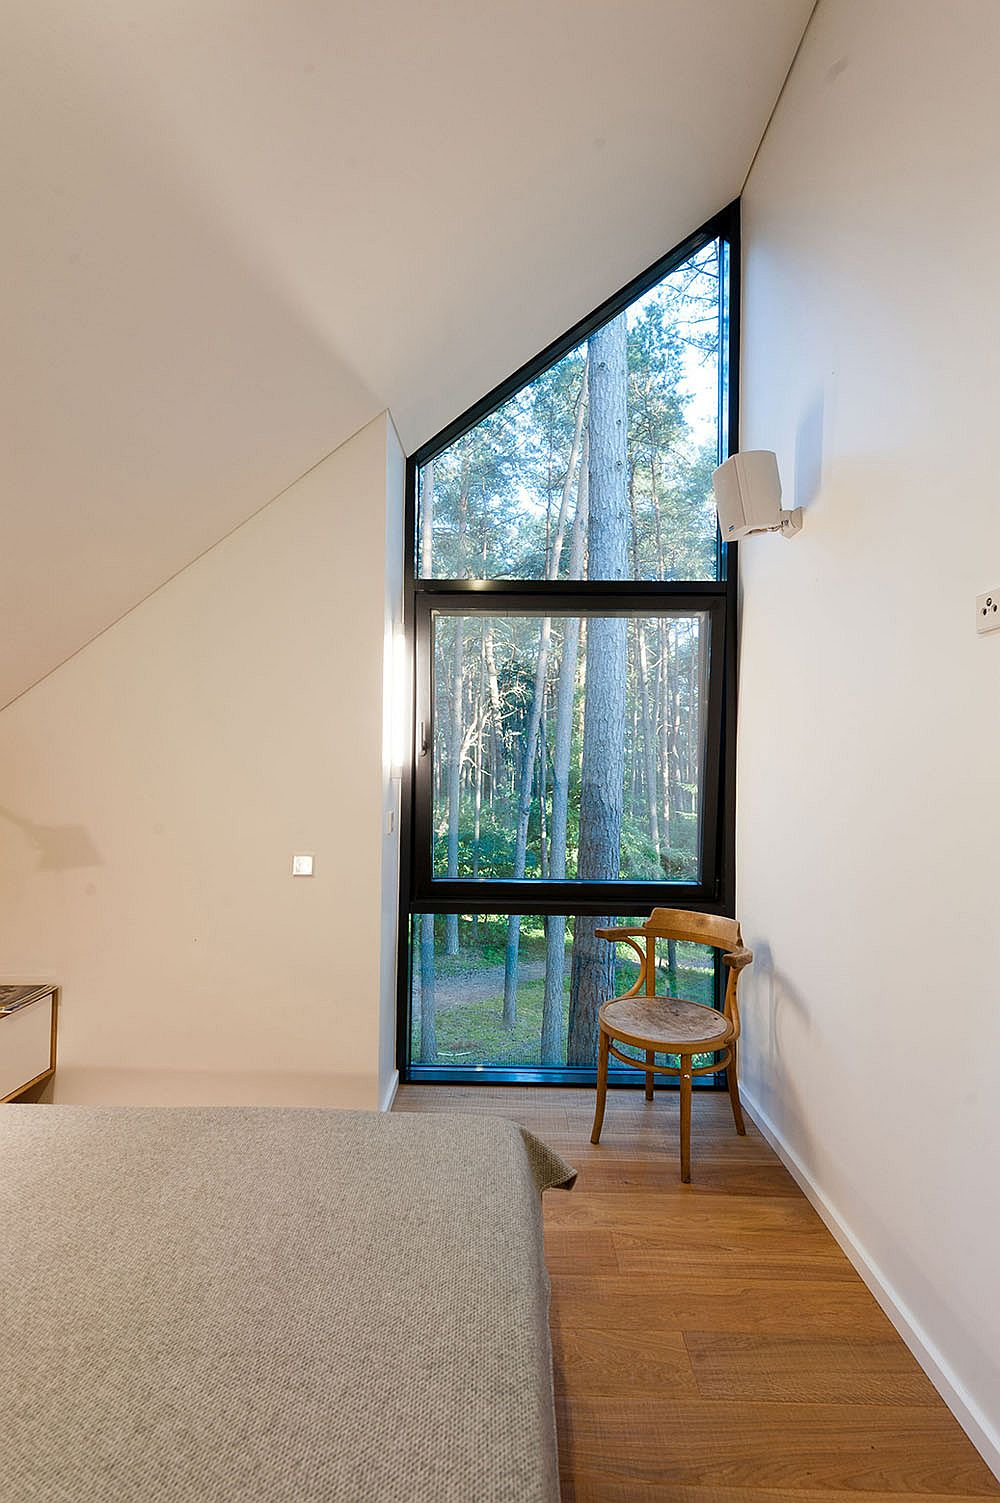 Corner window in the bedroom offers a view of the lush green outdoors